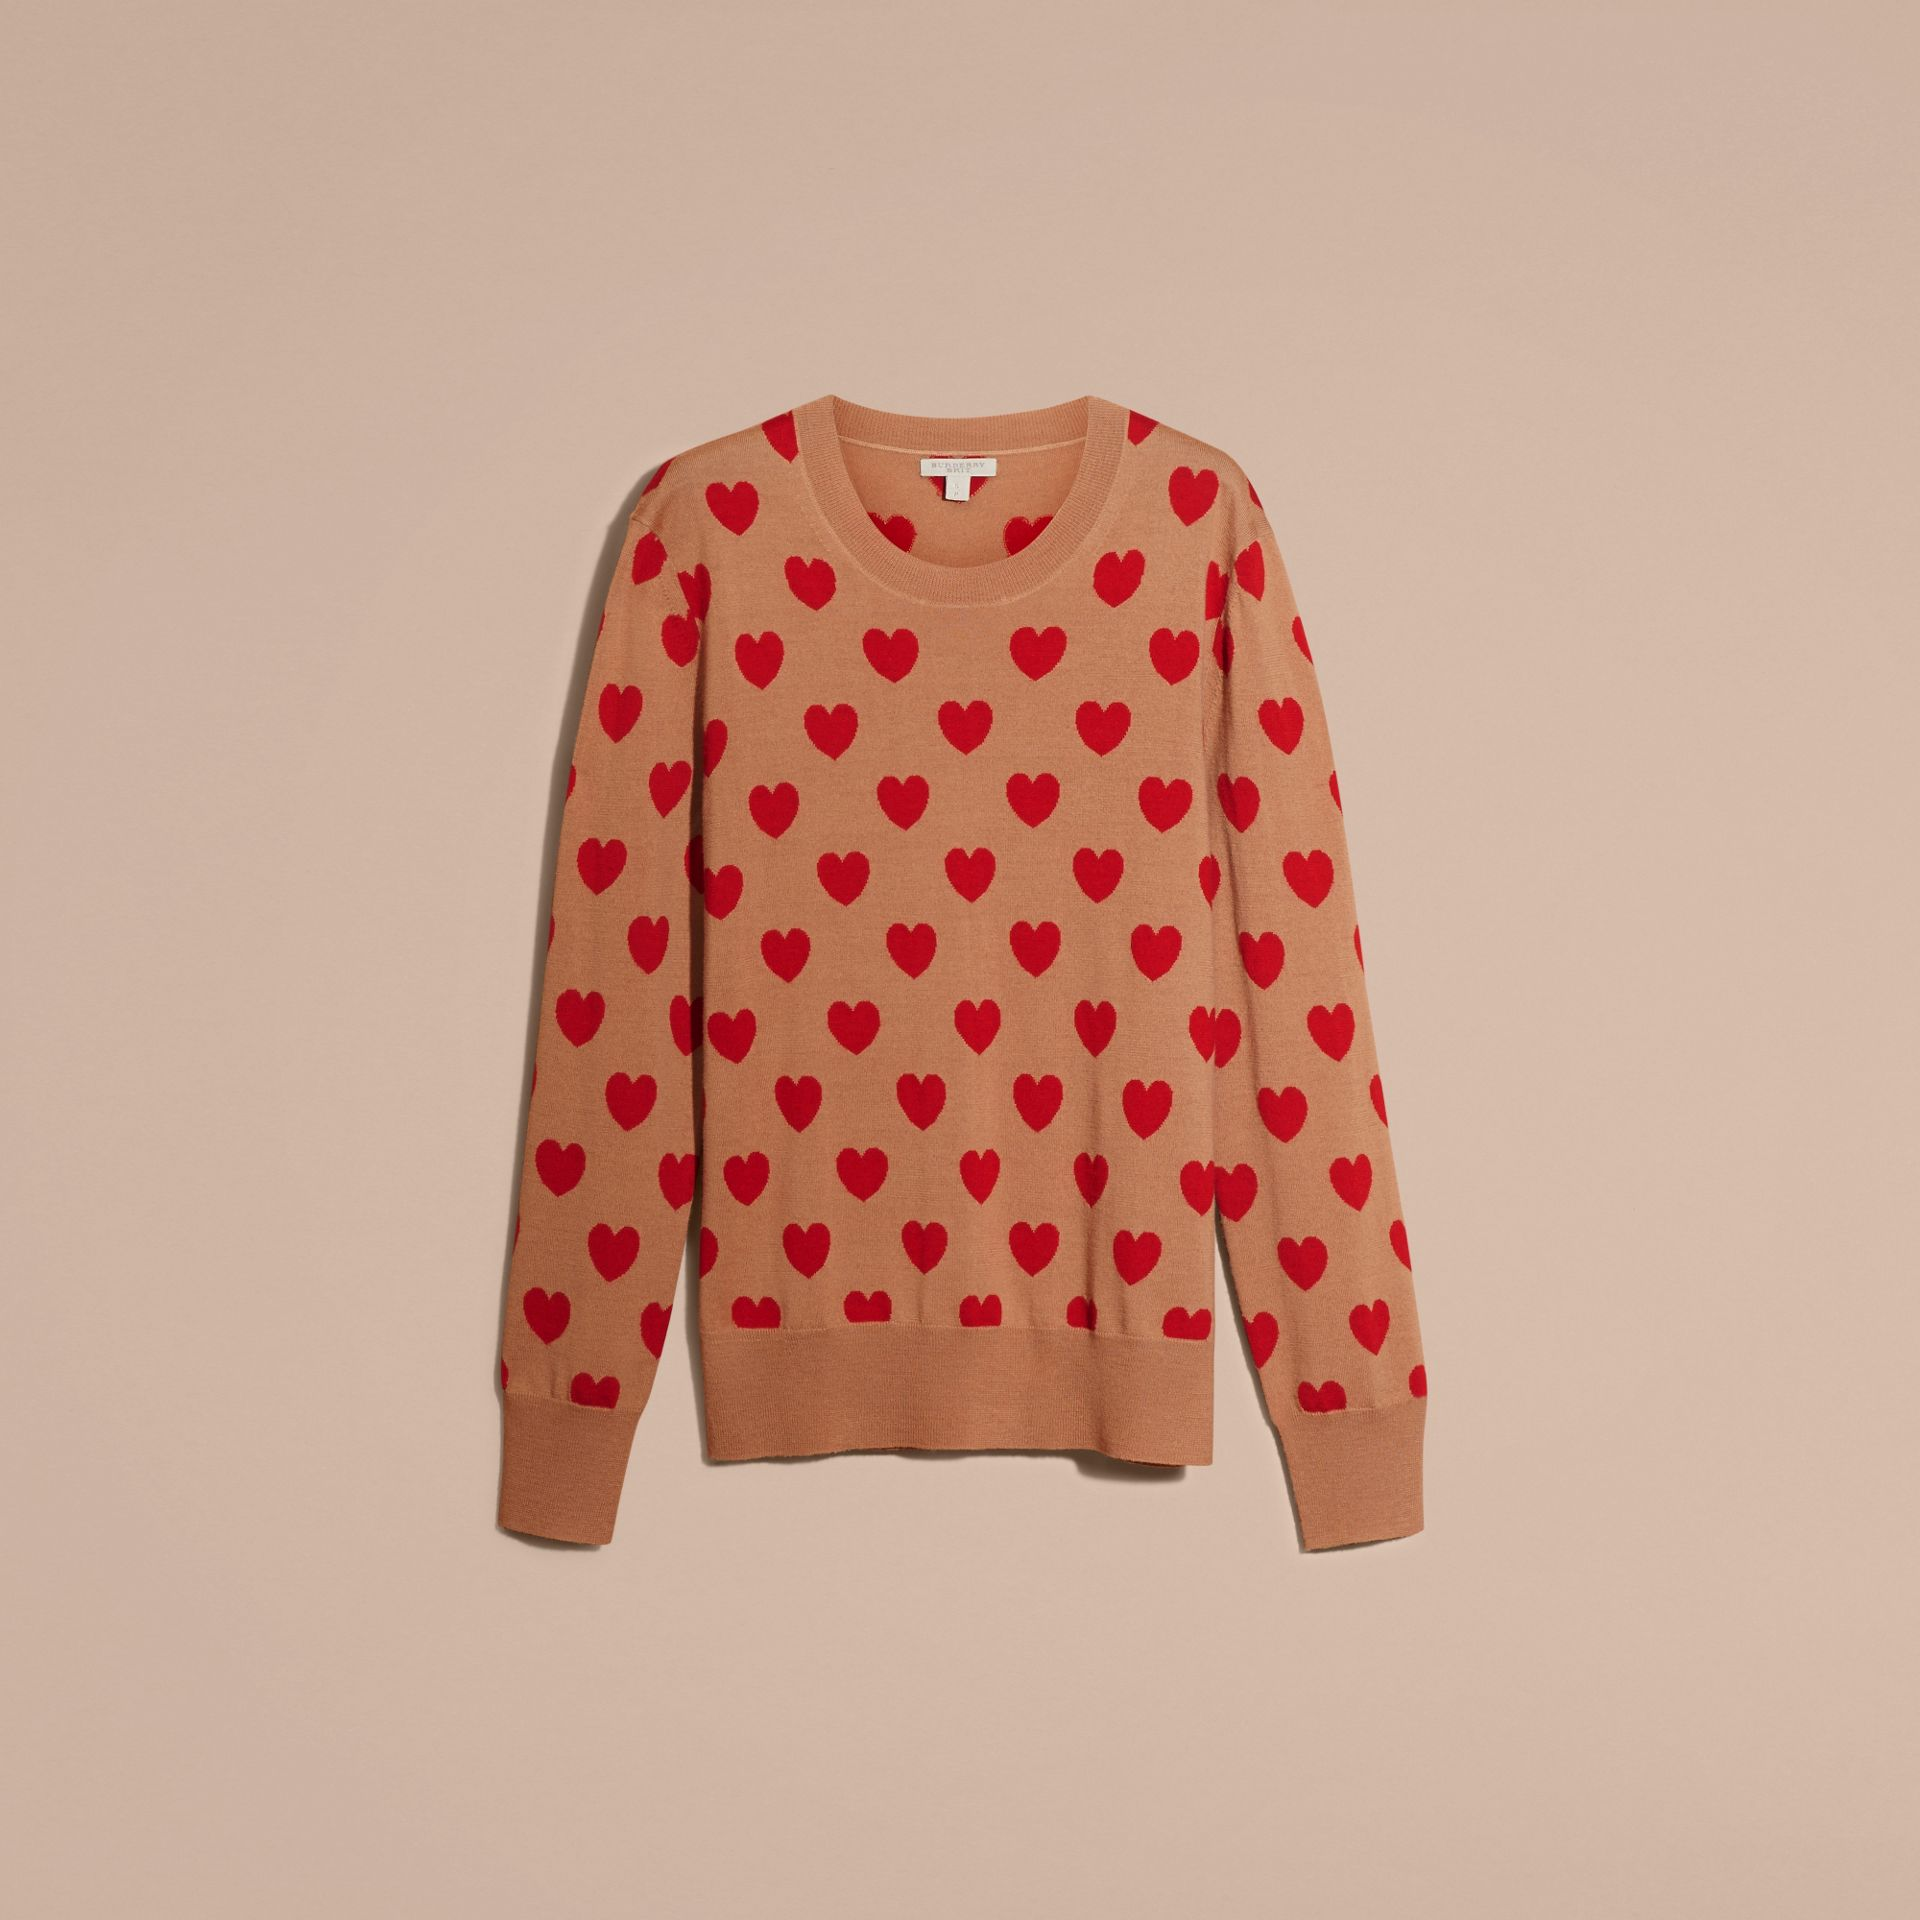 Heart Intarsia Merino Wool Sweater in Camel - Women | Burberry - gallery image 4